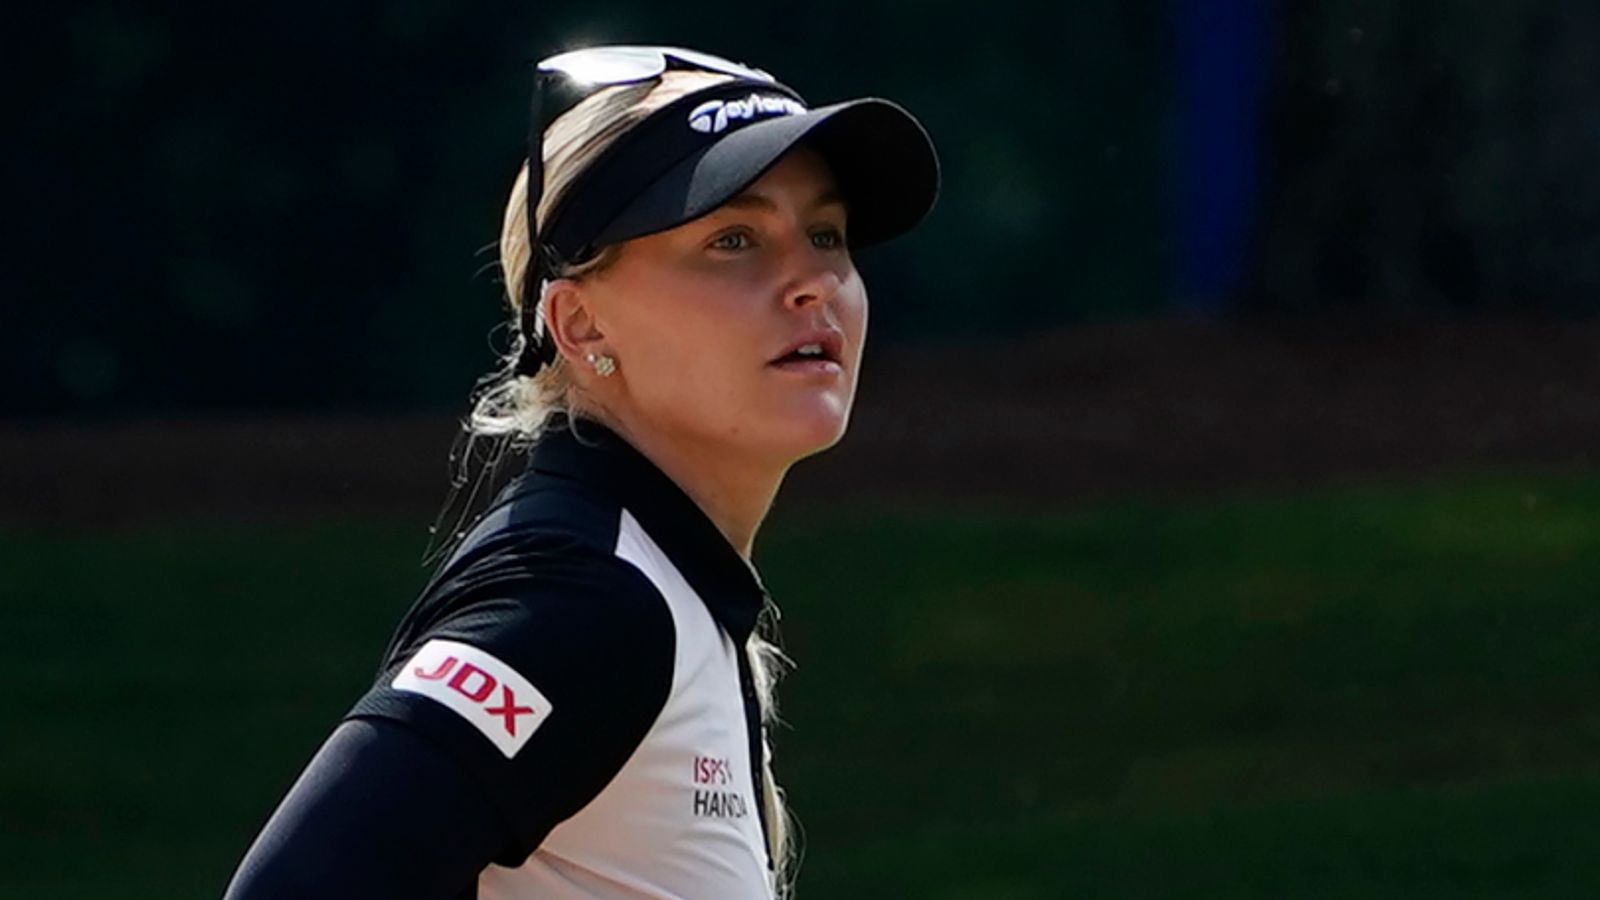 Sky Sports Golf: Key TV times for the Evian Championship, Senior Open, Cazoo Open and 3M Open